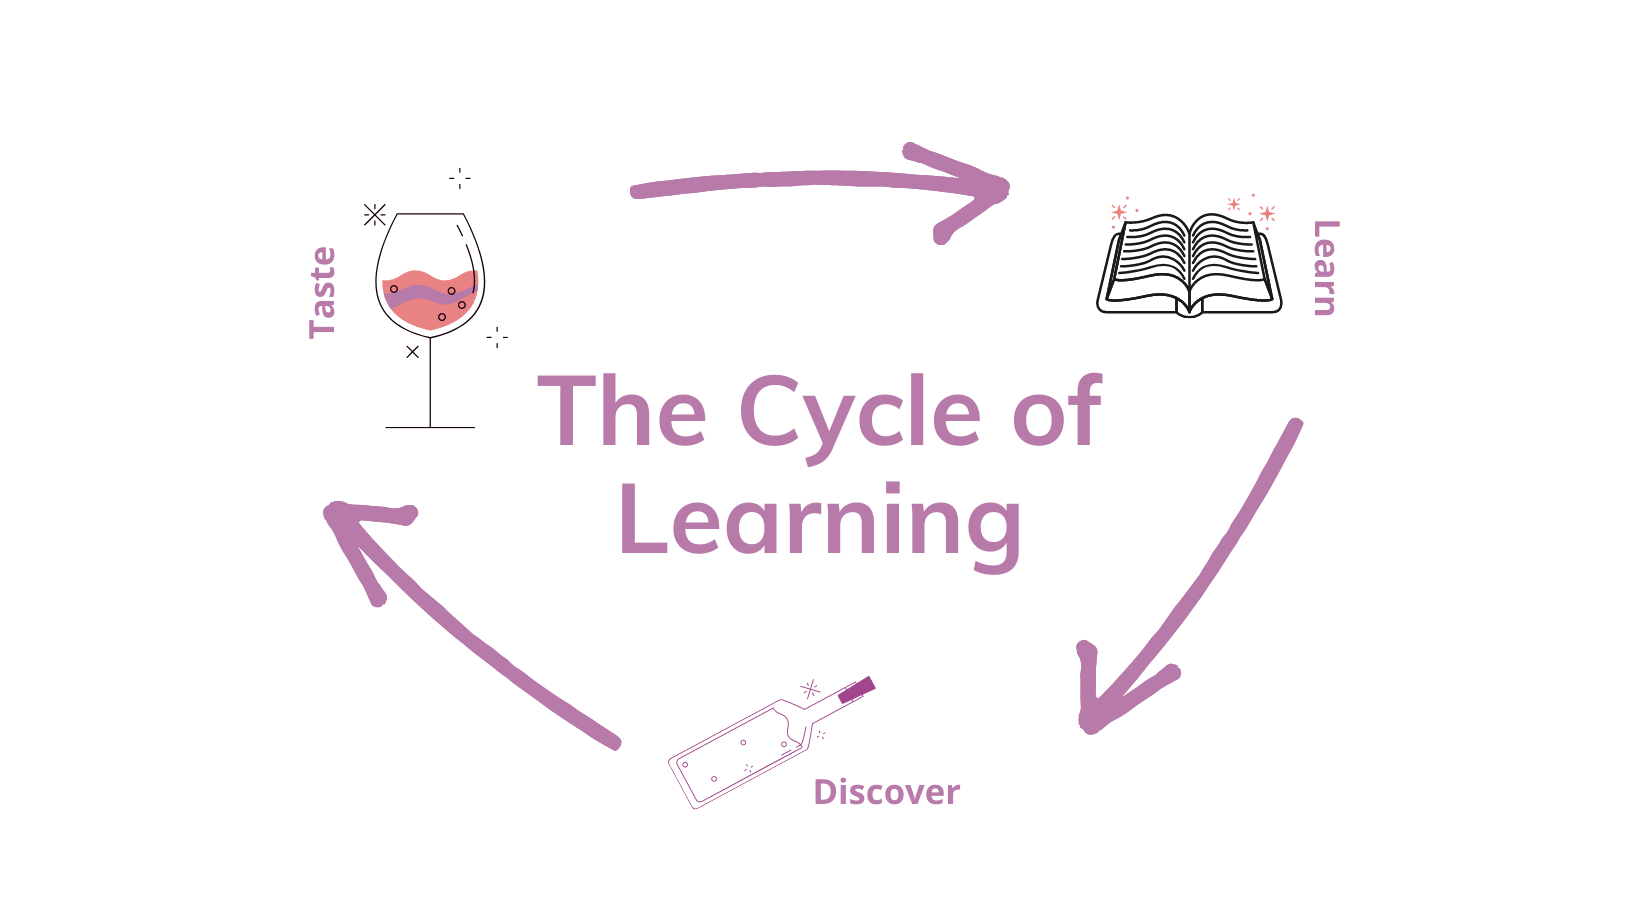 The Cycle of Learning: Taste, Learn, Discover